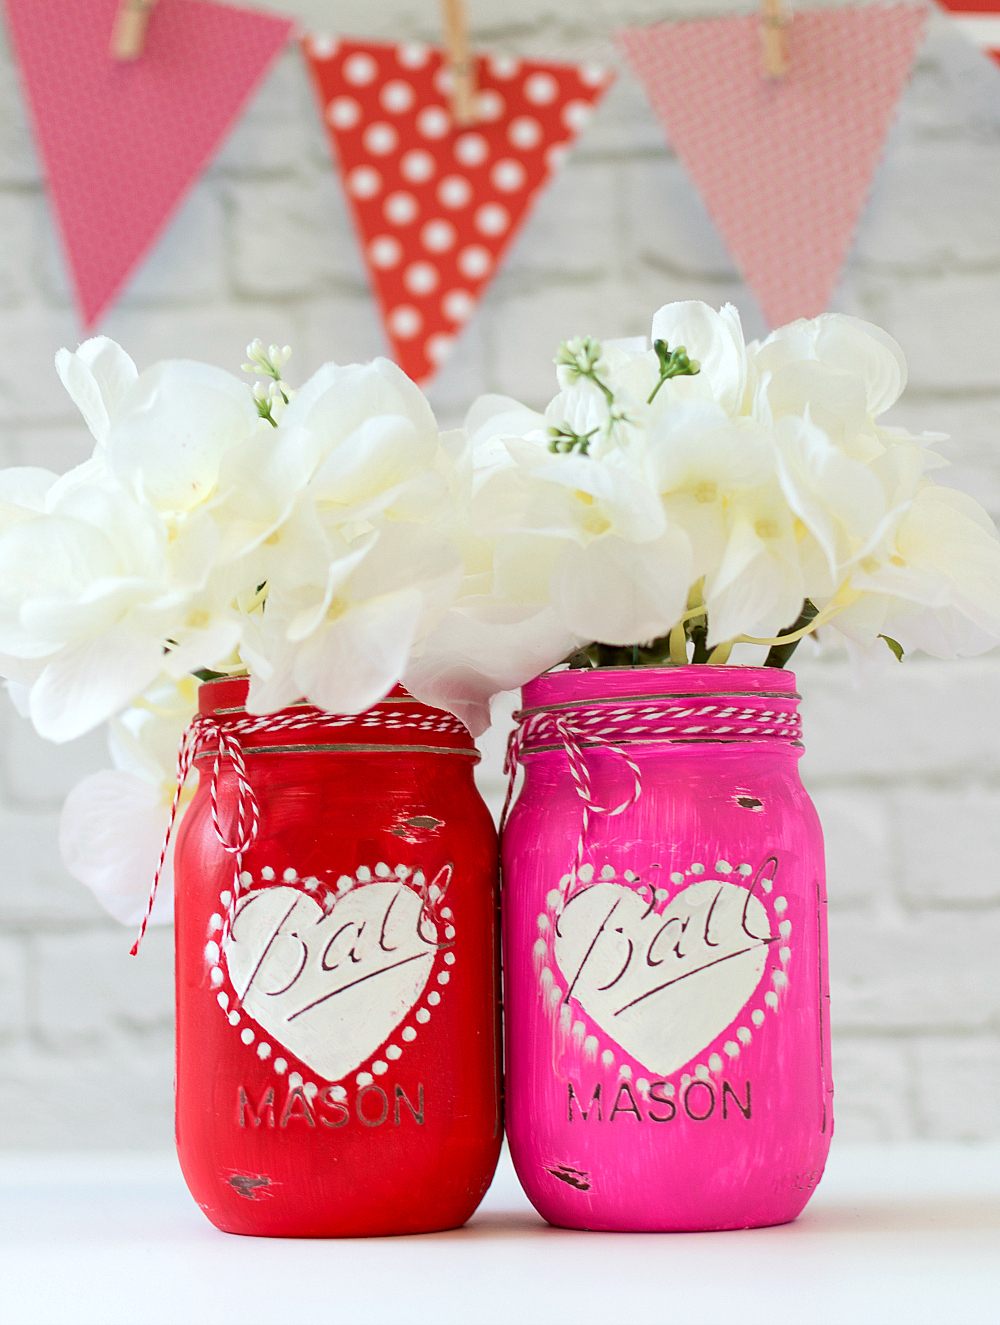 Mason Jar Craft for Valentine Day